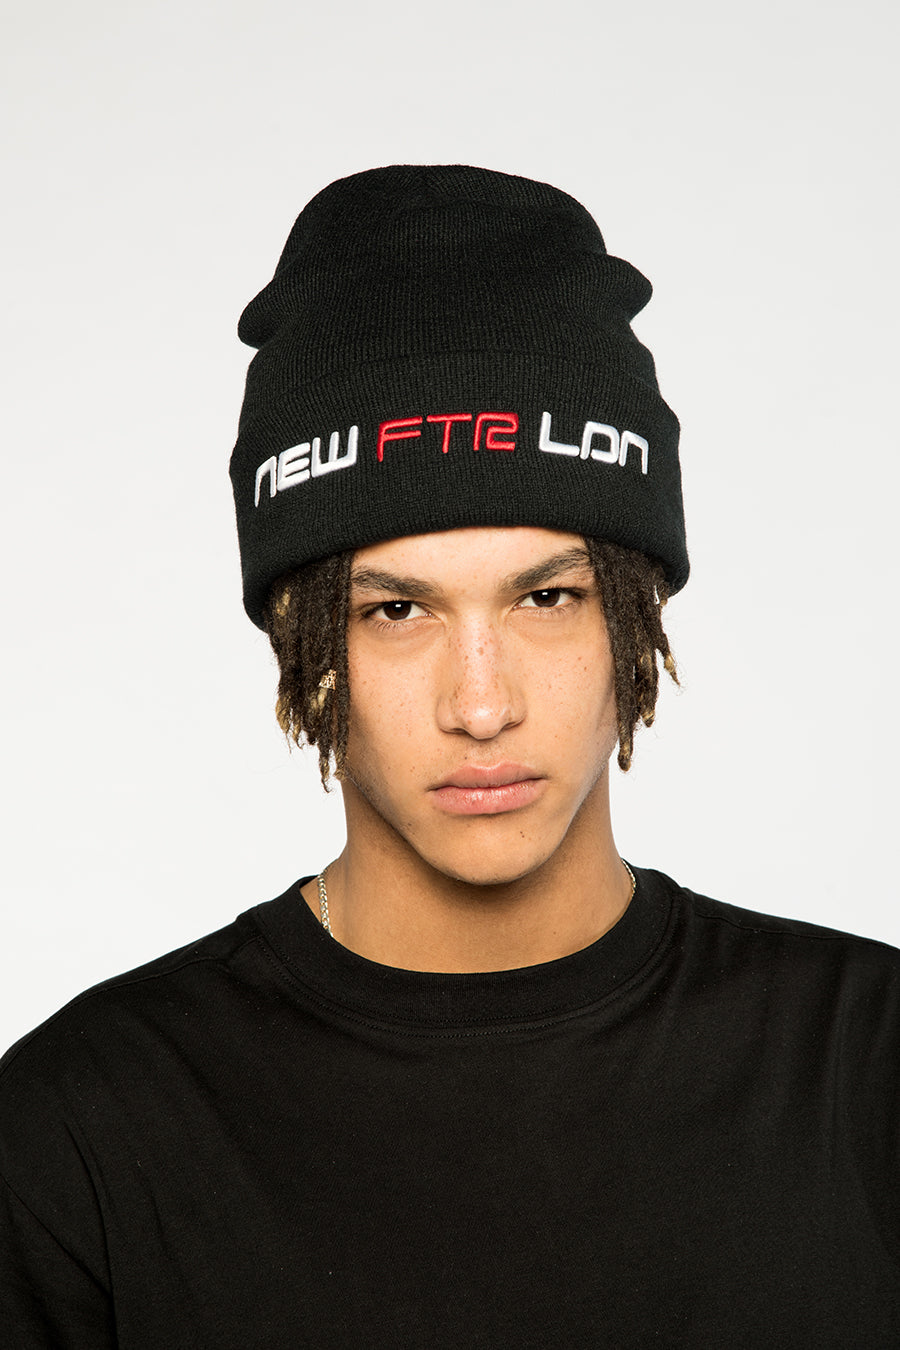 new_future_london_racer_beanie_2_-1.jpg